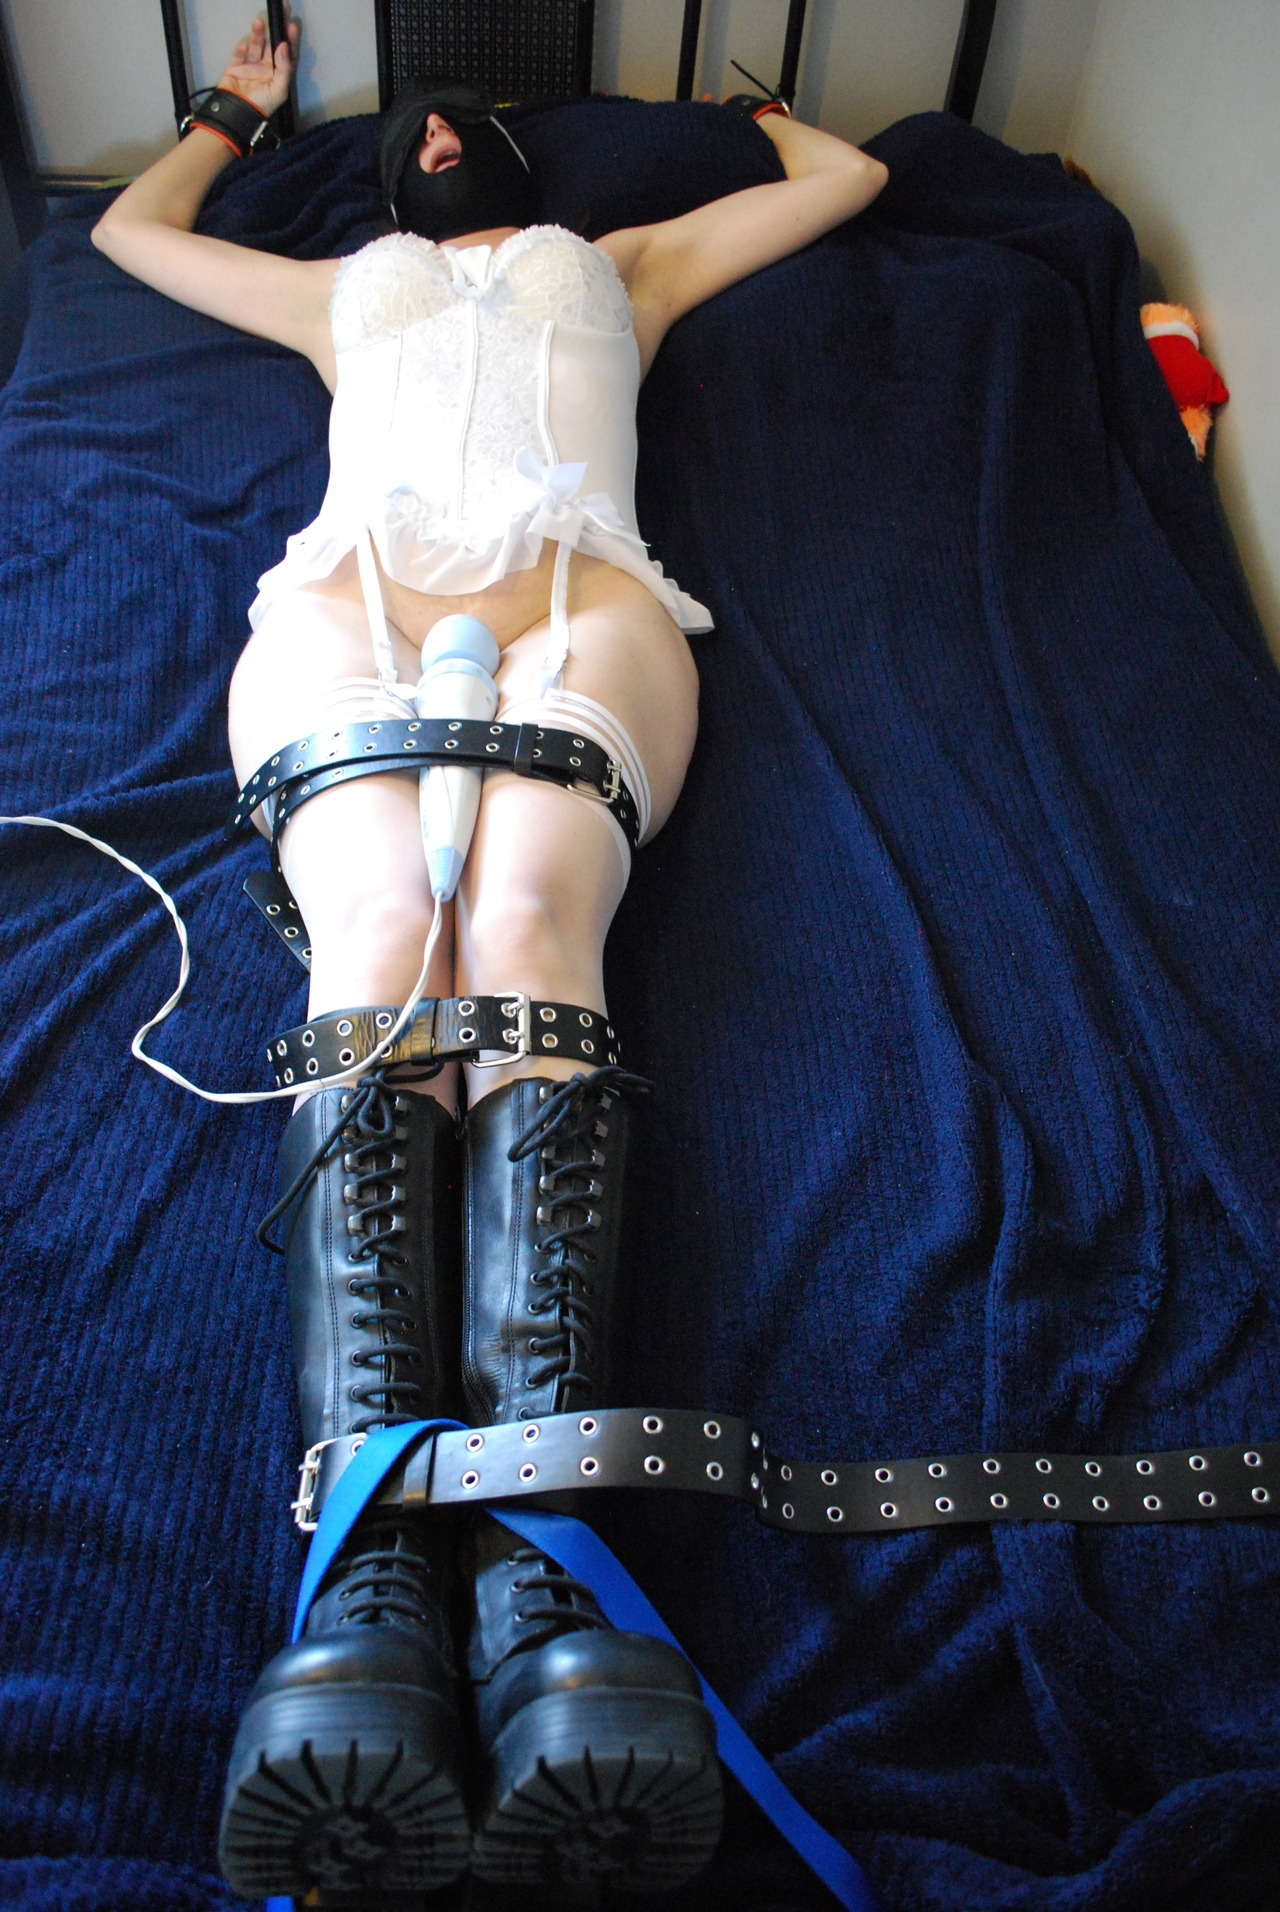 Bed Bondage #3 Vibrator held snugly in place and running on high - What a tease.